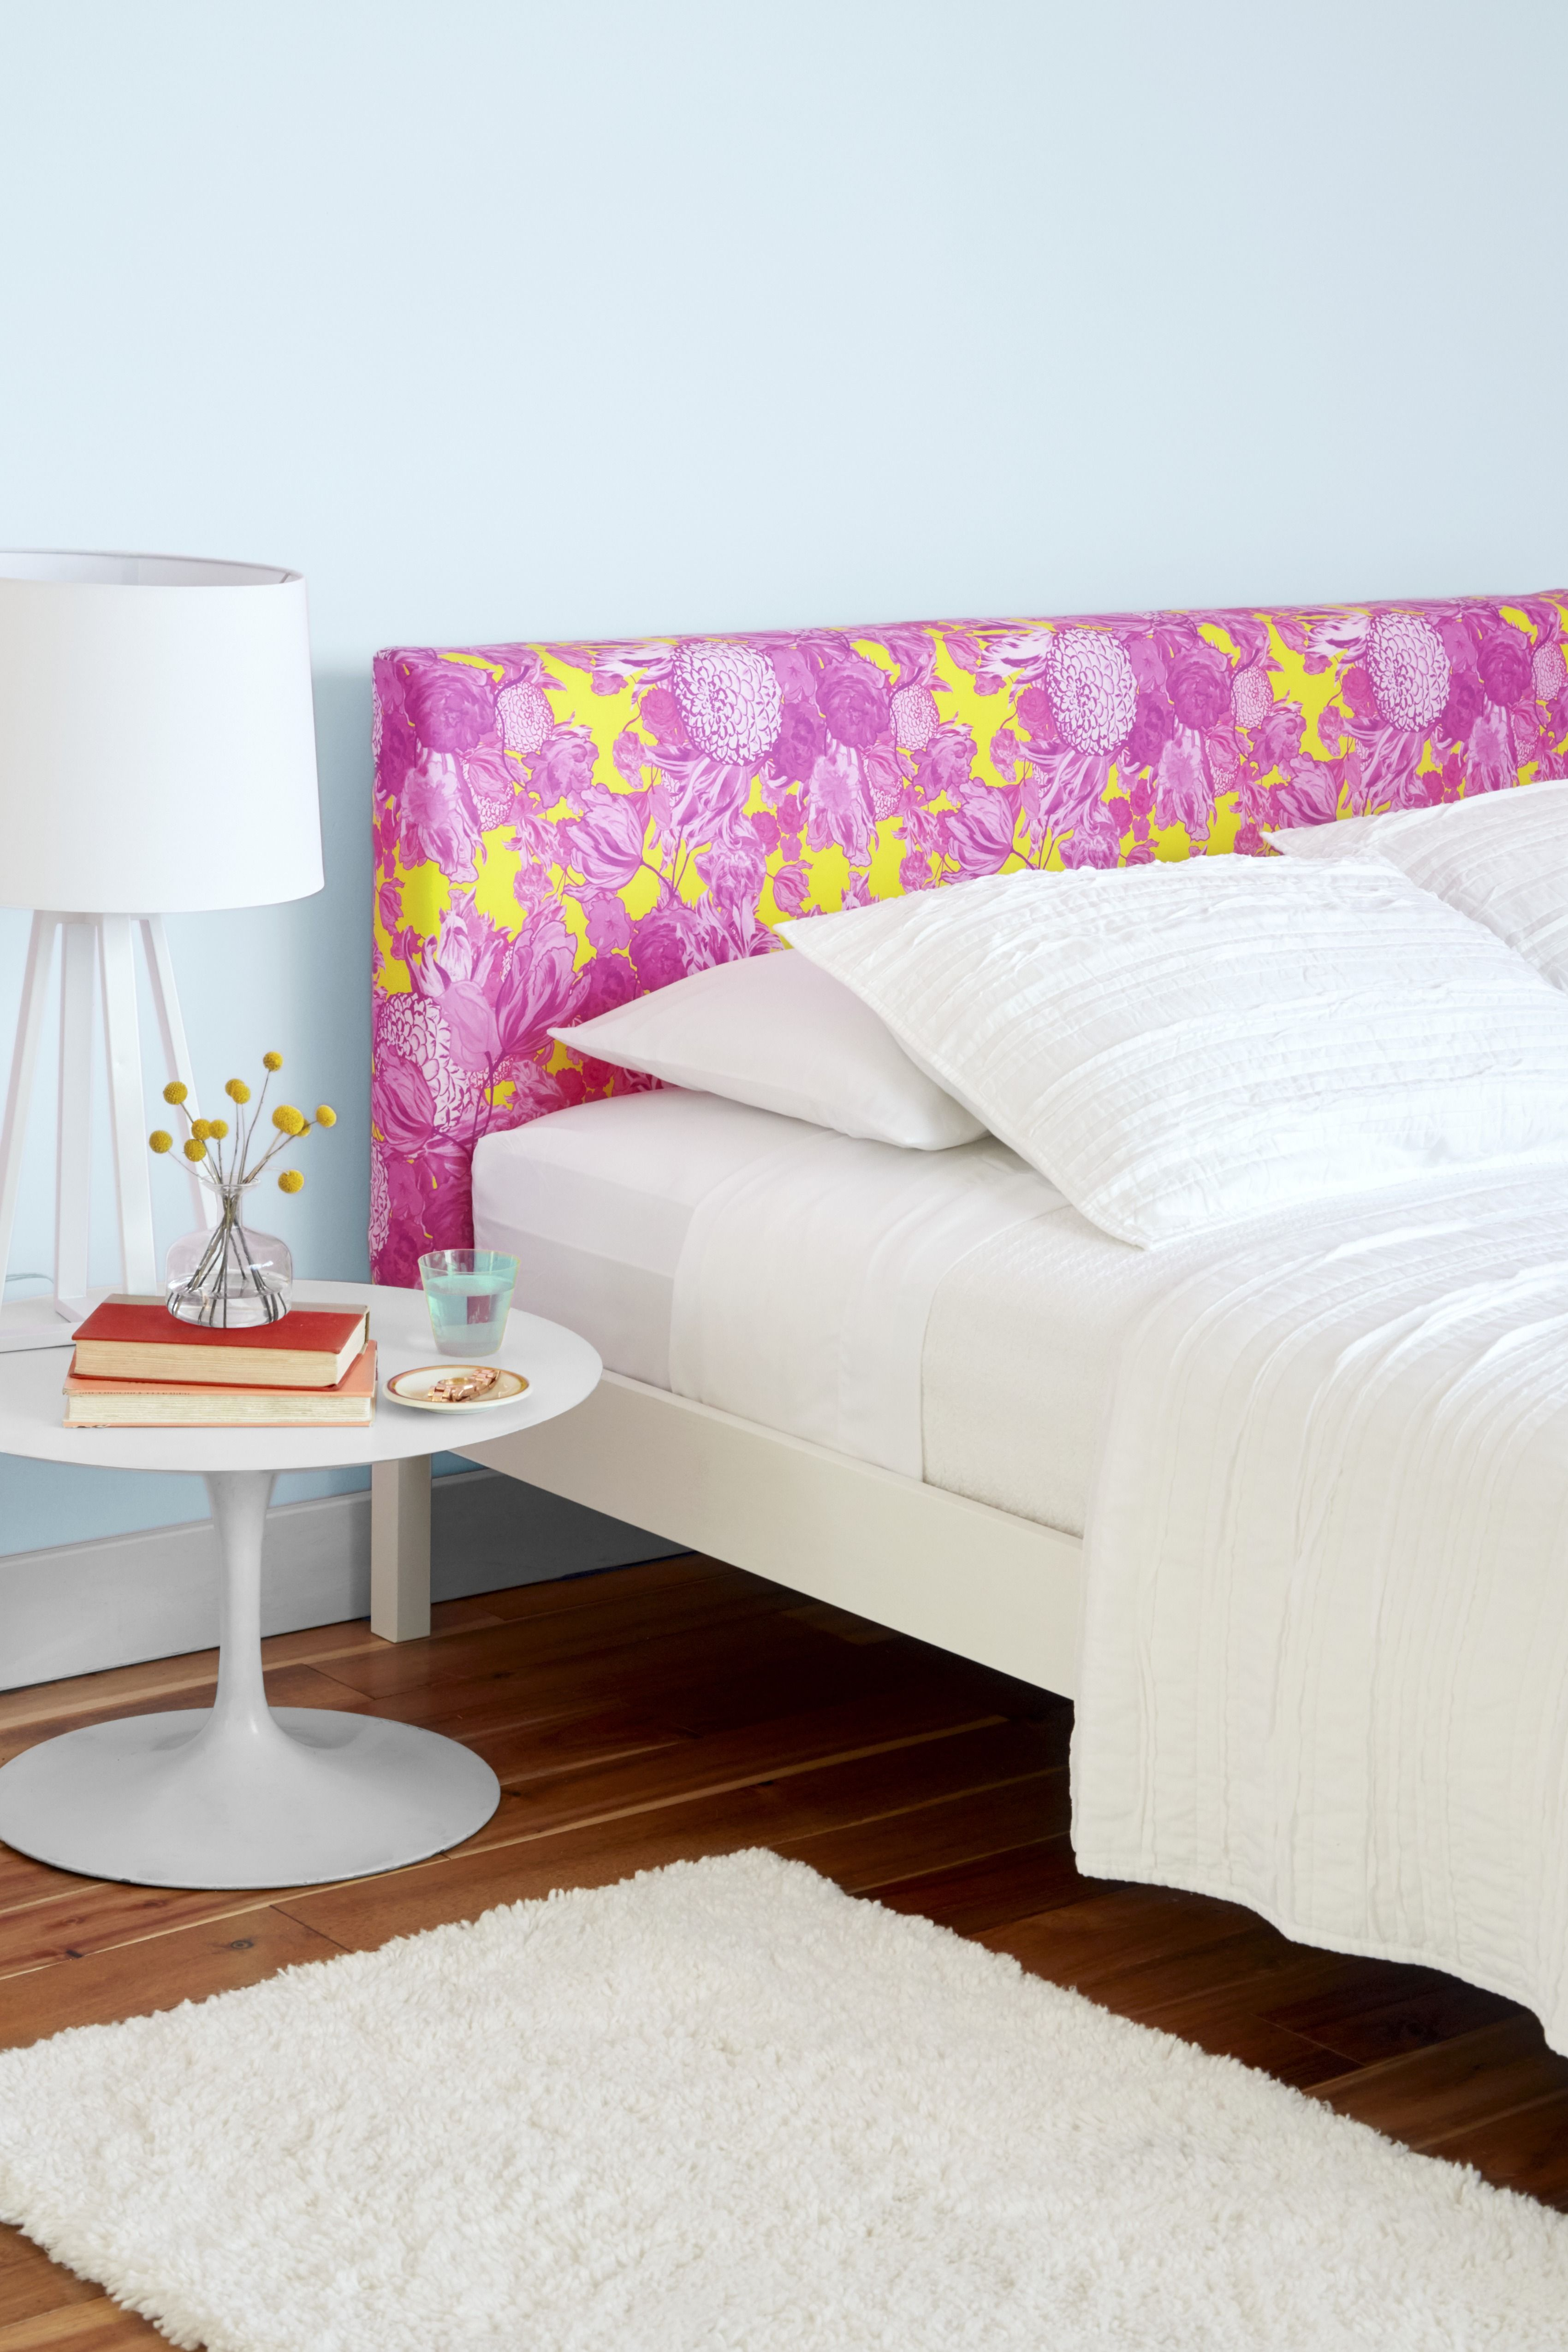 D I Y A Cute Bed Frame In 3 Easy Steps